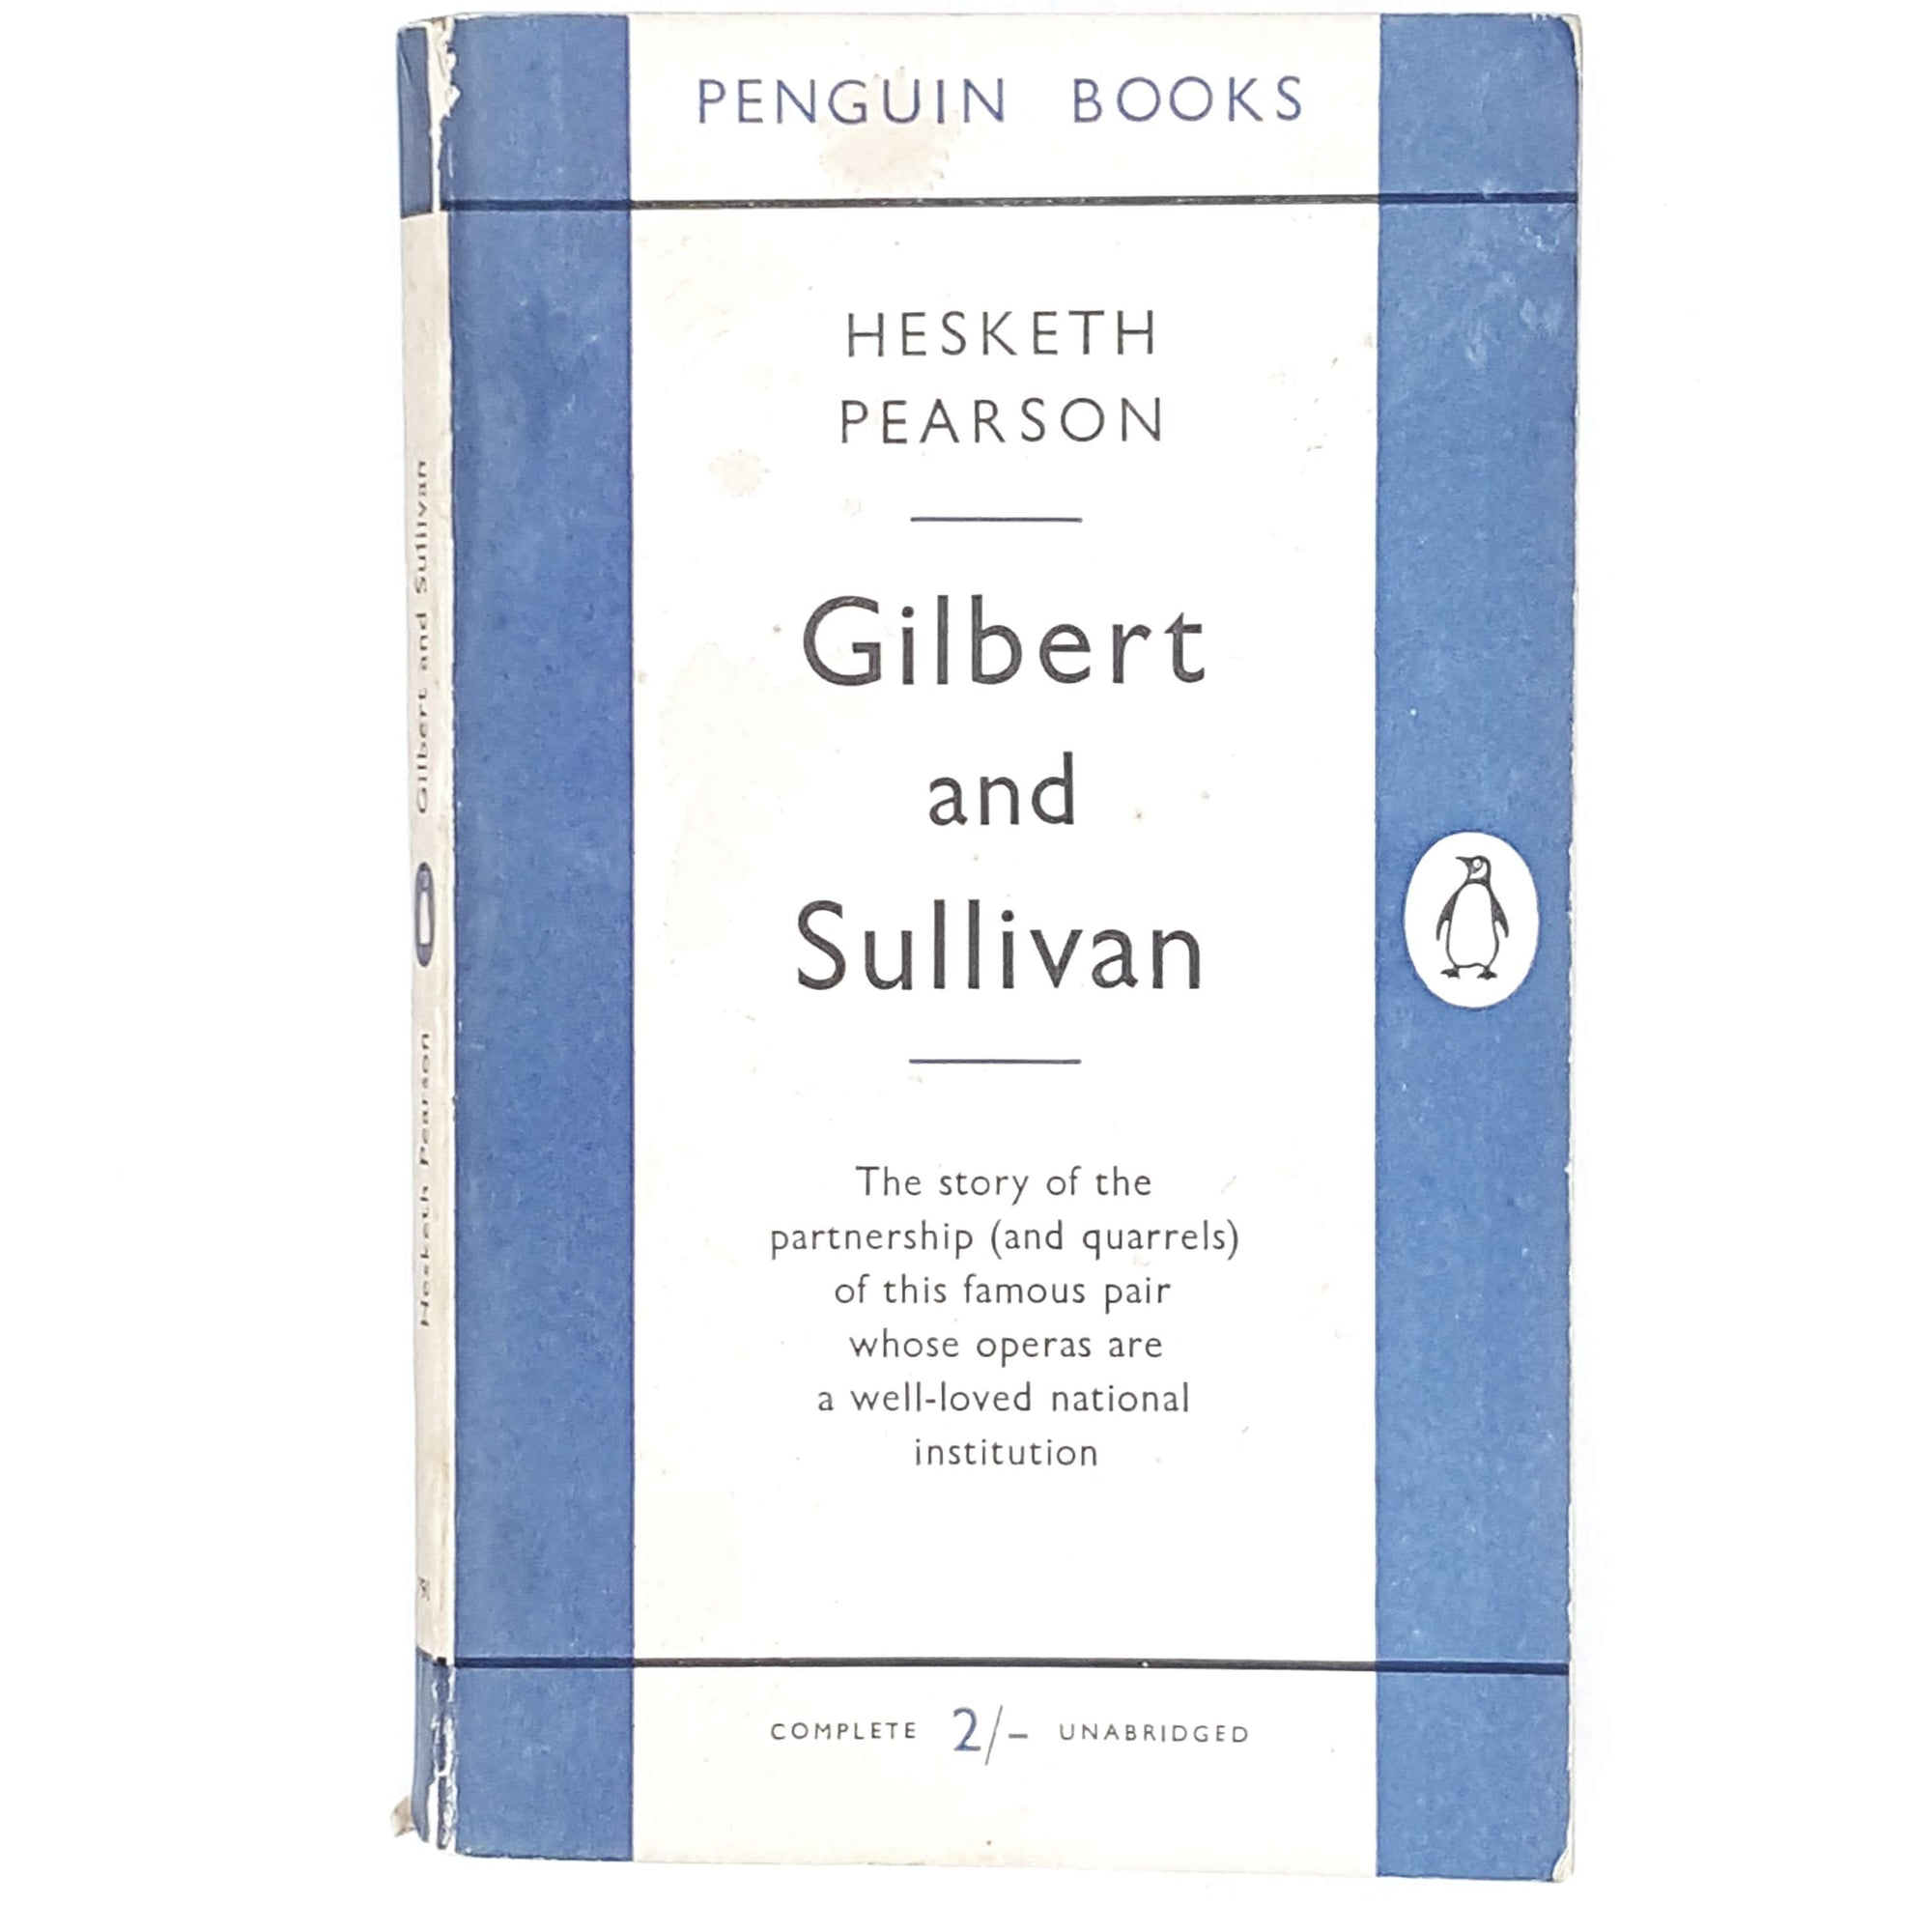 blue-gilbert-sulivan-vintage-penguin-country-house-library